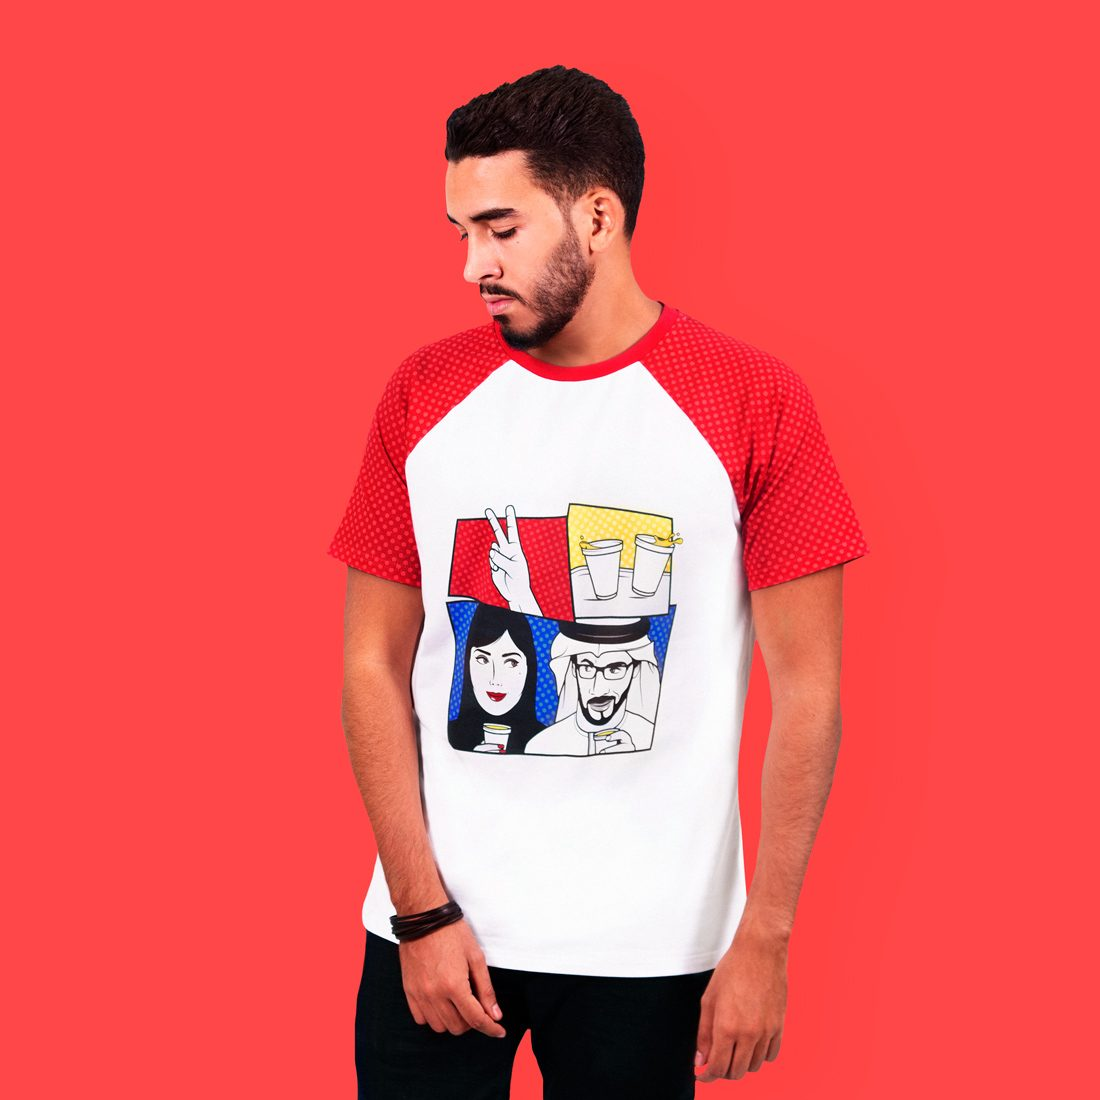 Karak Date T-shirt by La Come Di